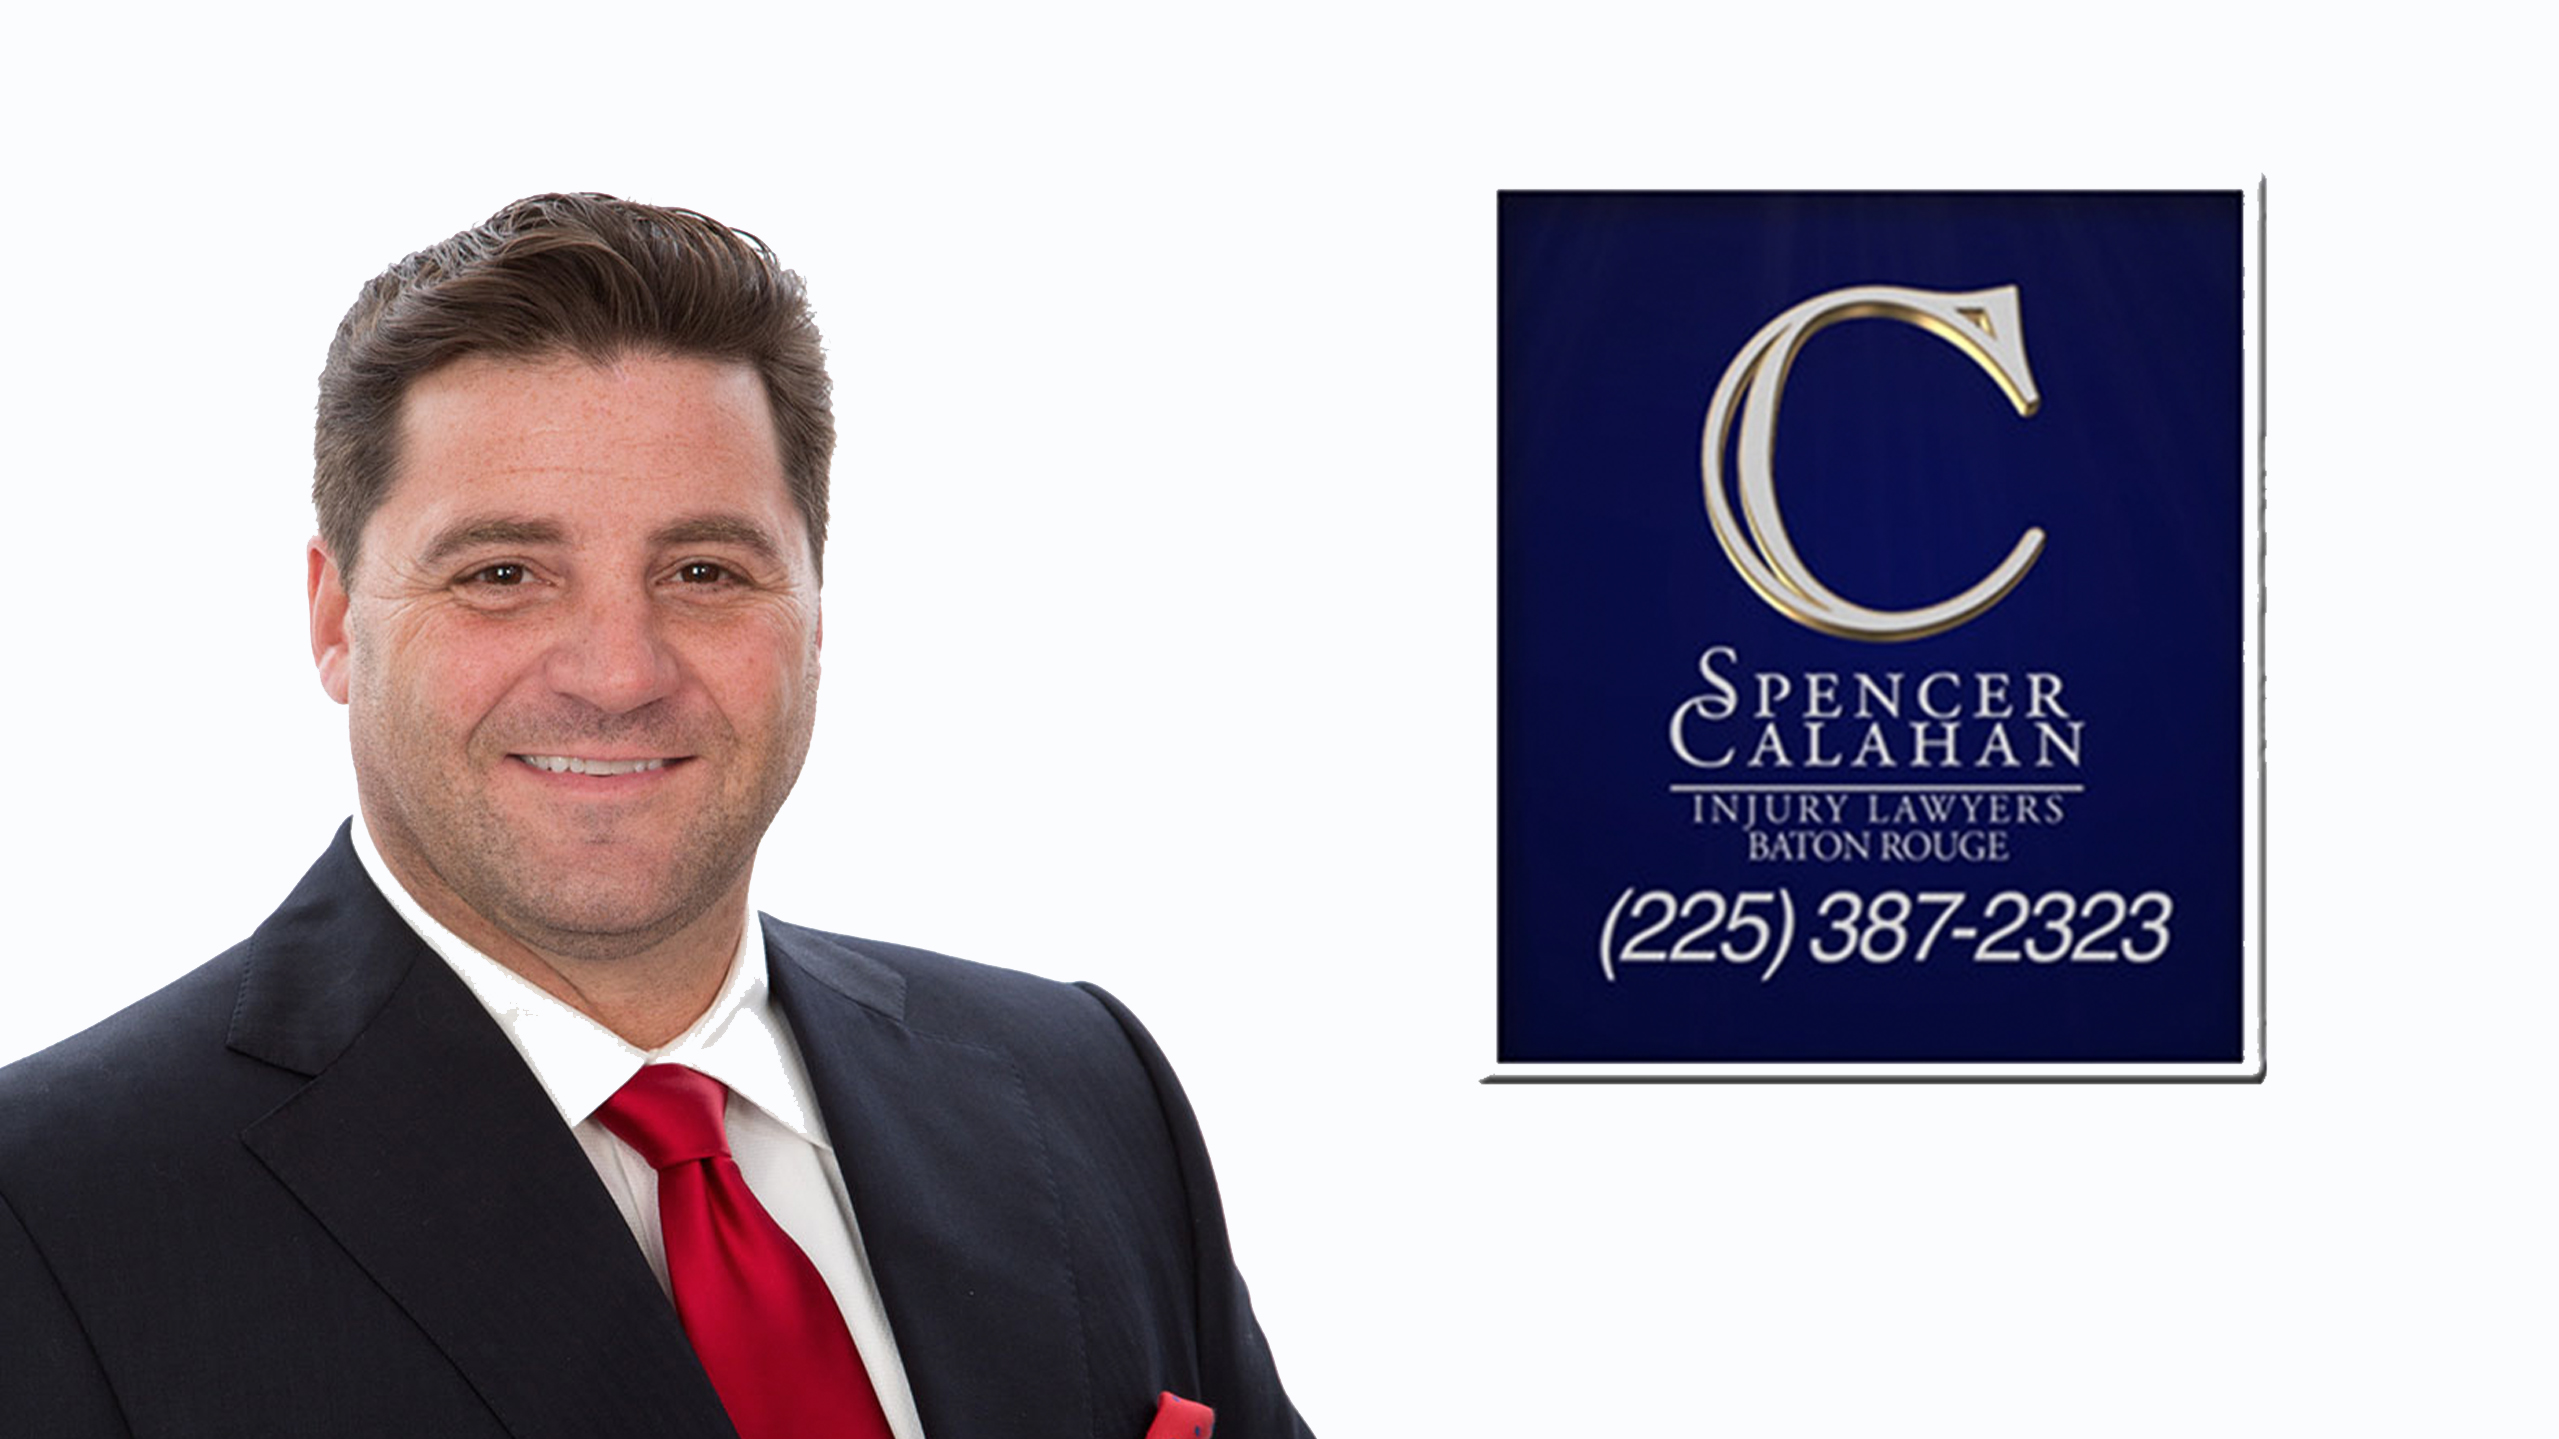 Spencer Calahan Injury Lawyer